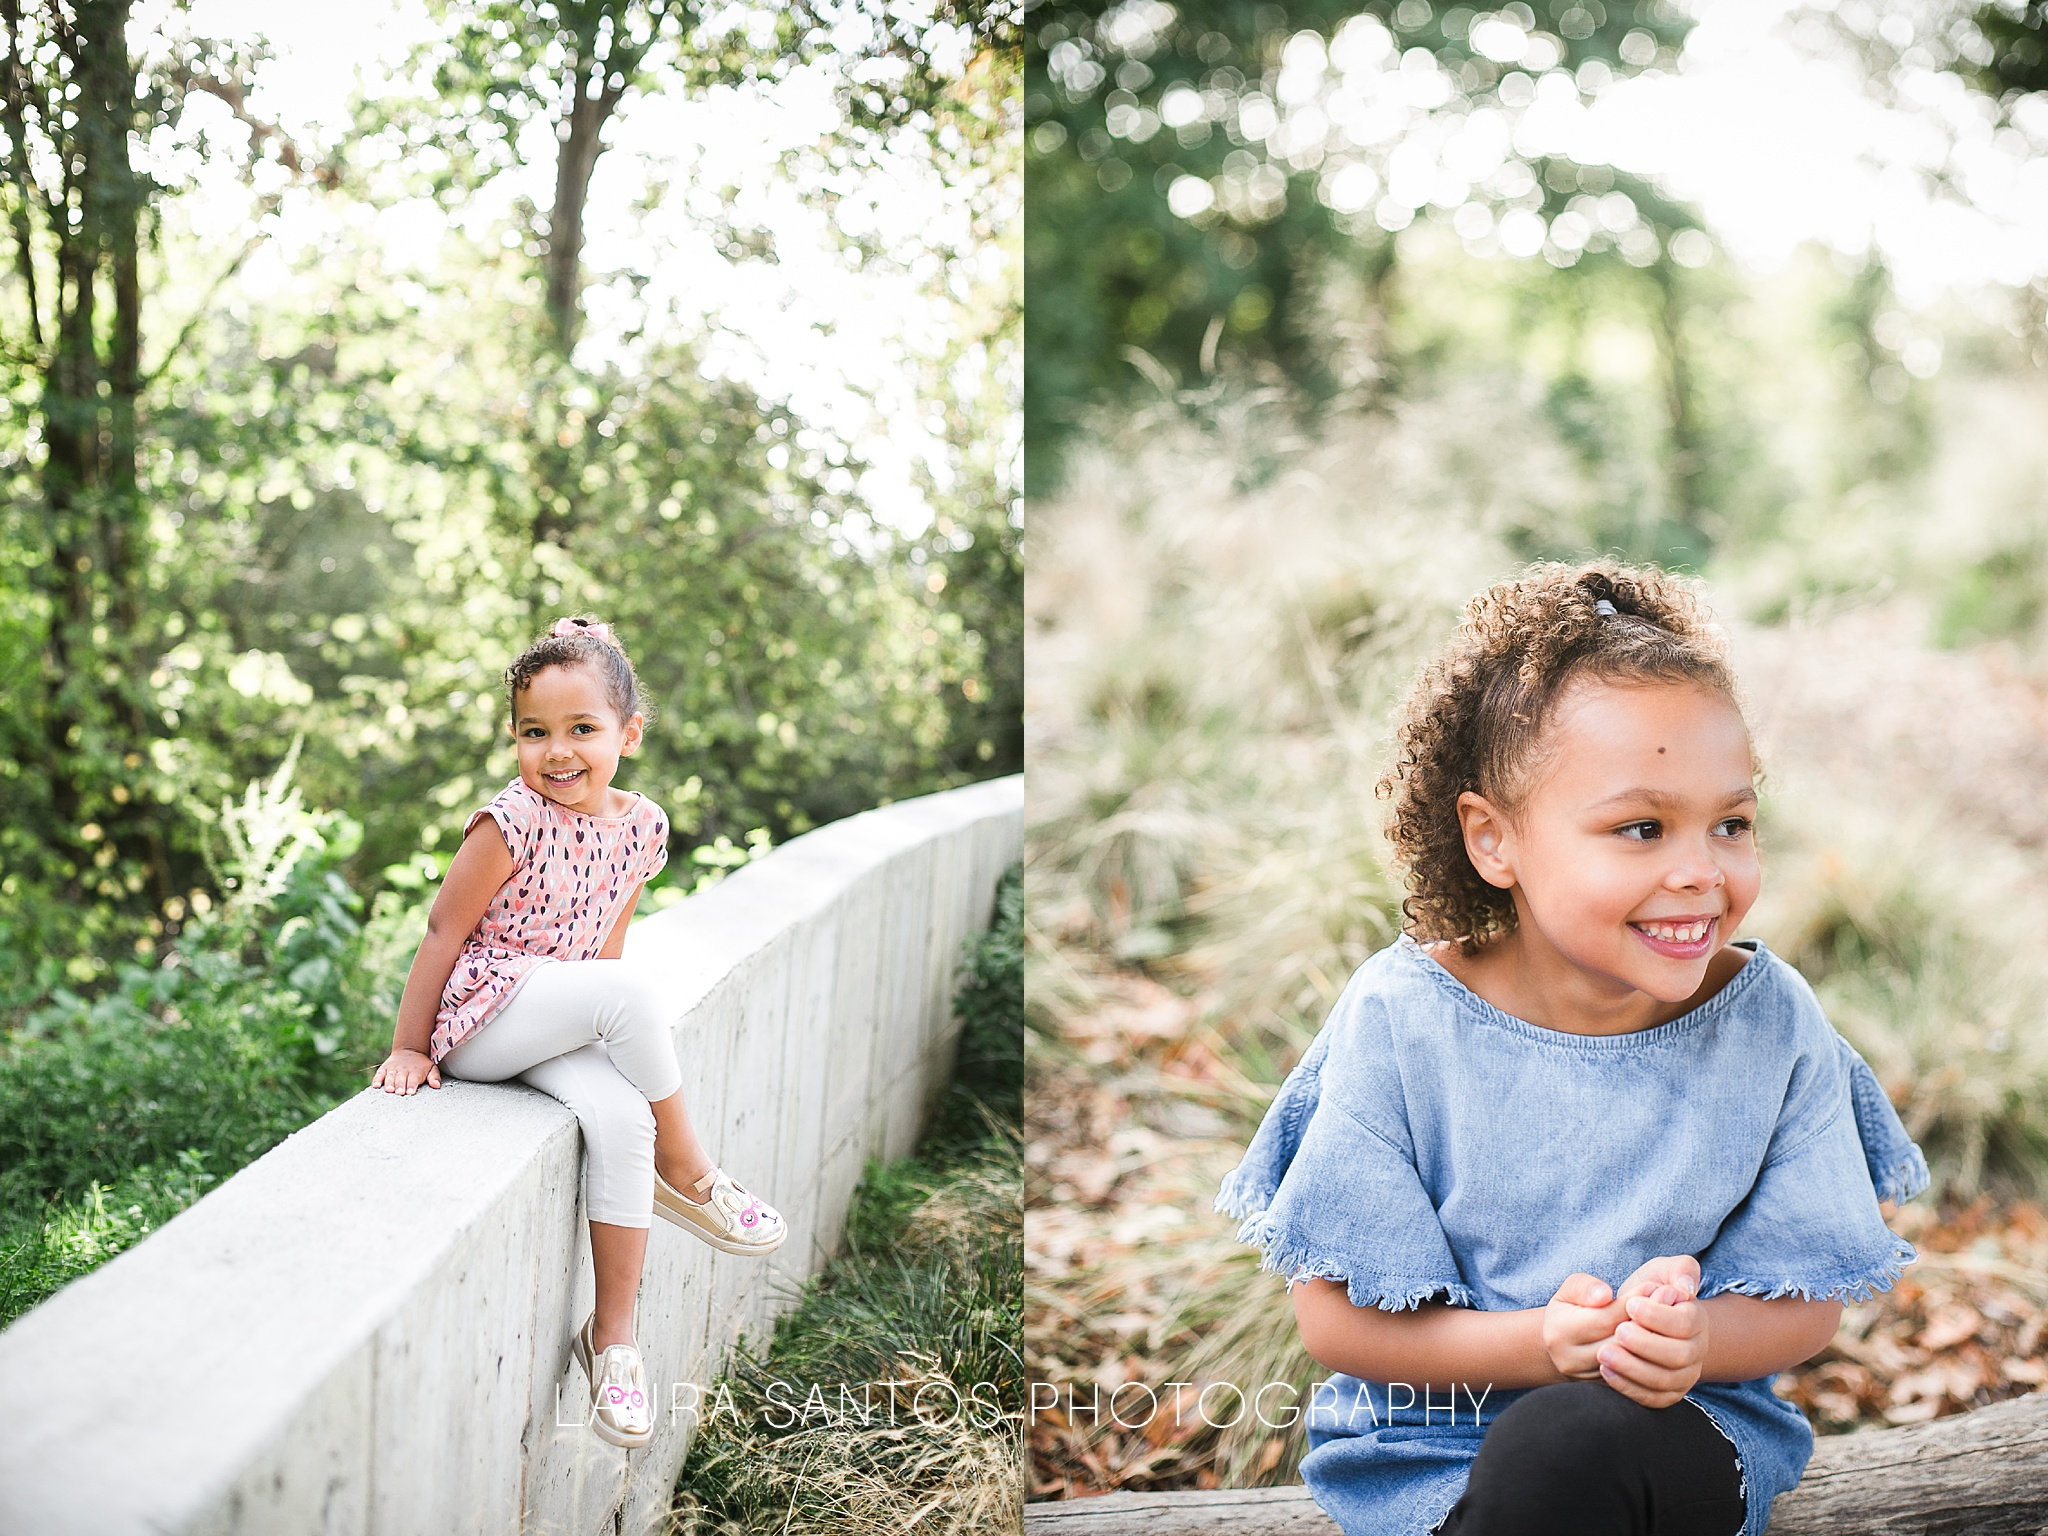 Laura Santos Photography Portland Oregon Family Photographer_0668.jpg